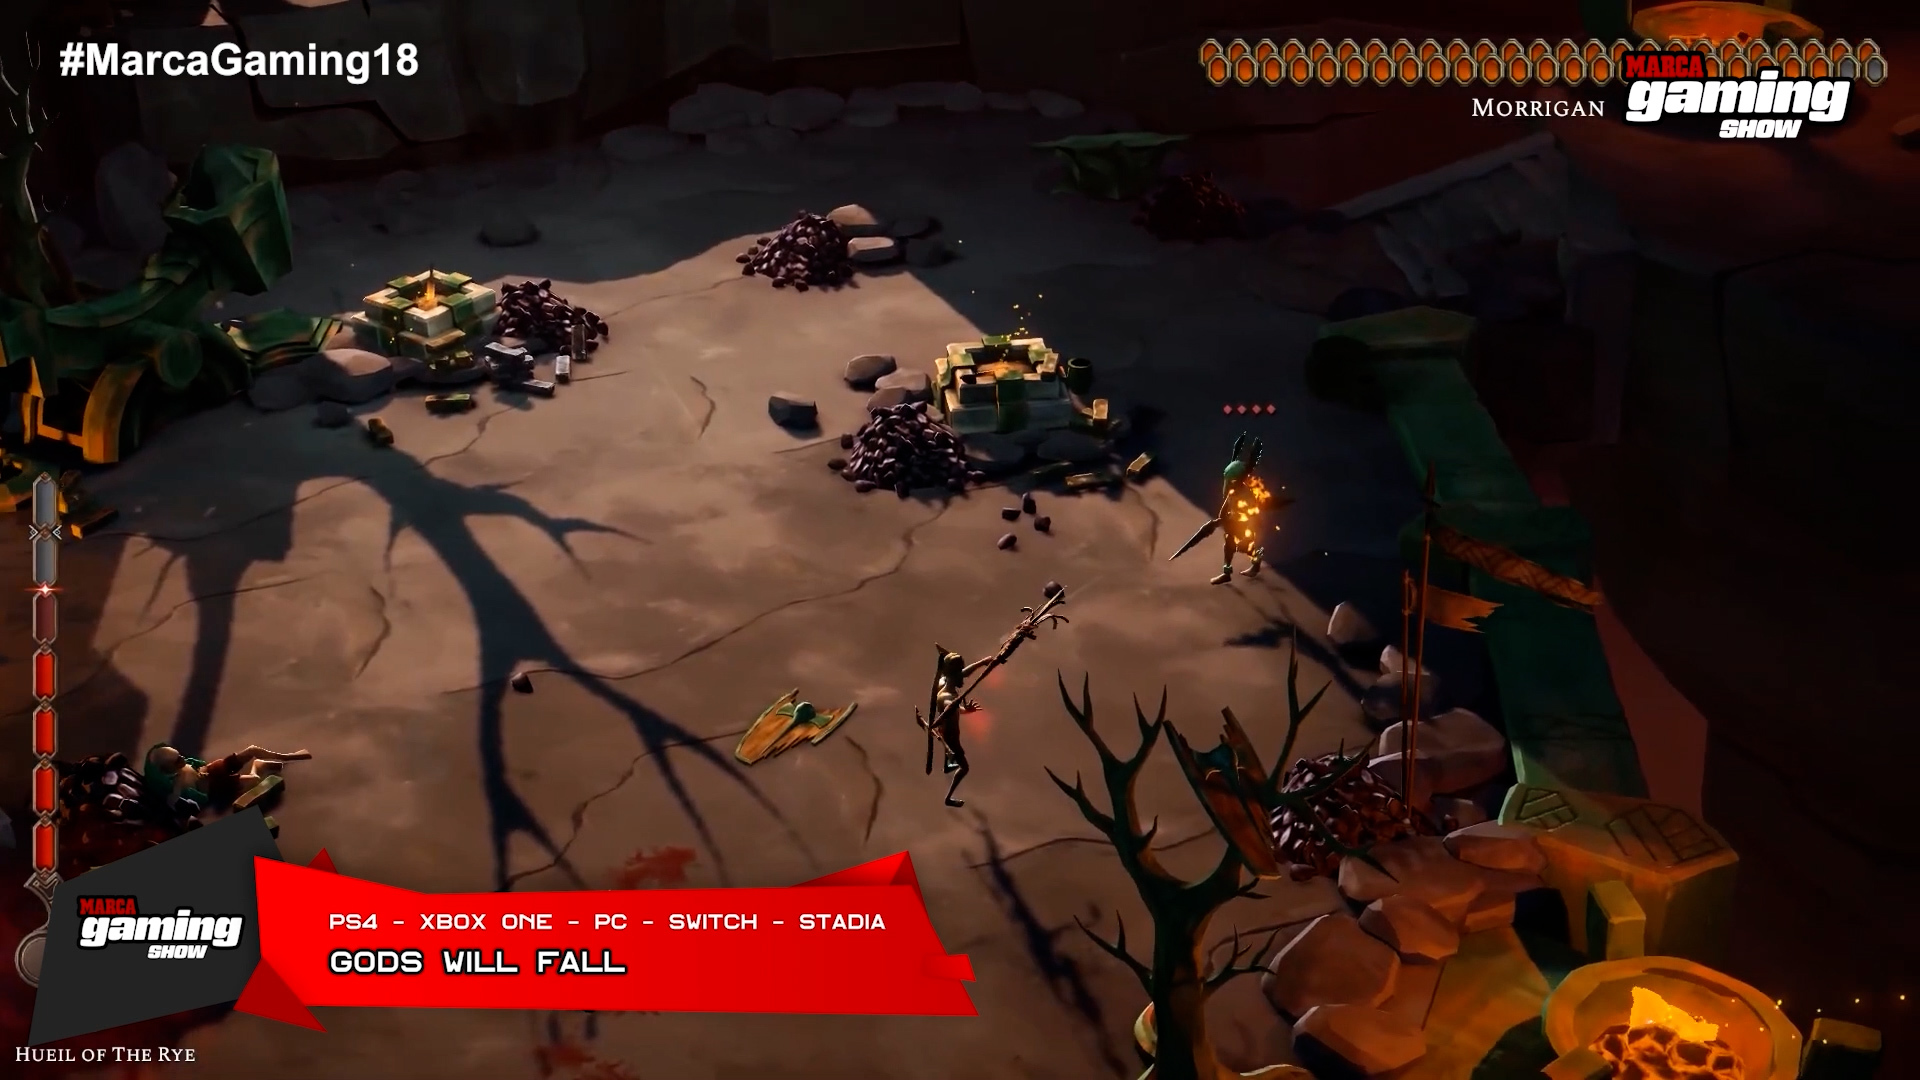 Gods Will Fall (PC - PS4 - XBOX ONE - SWITCH - STADIA)